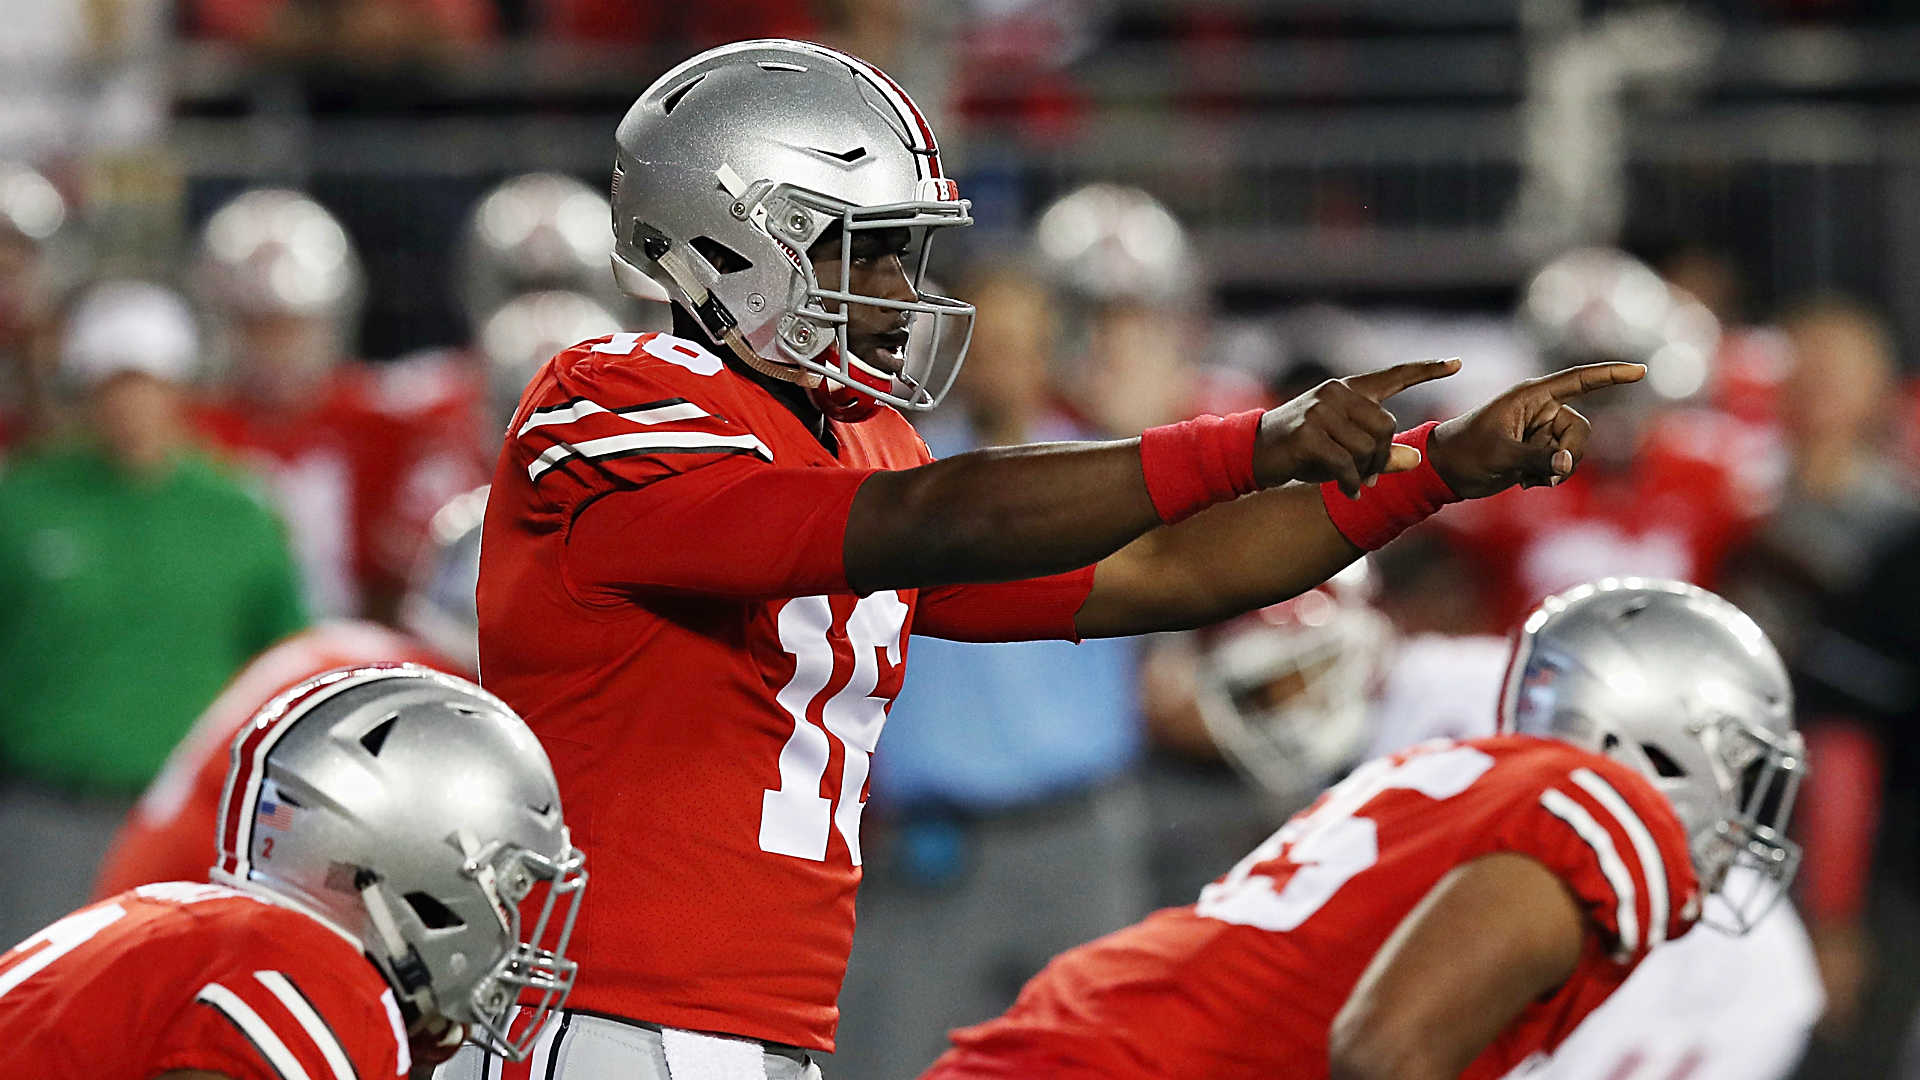 J.T. Barrett must own this big-game stage for Buckeyes against Penn State